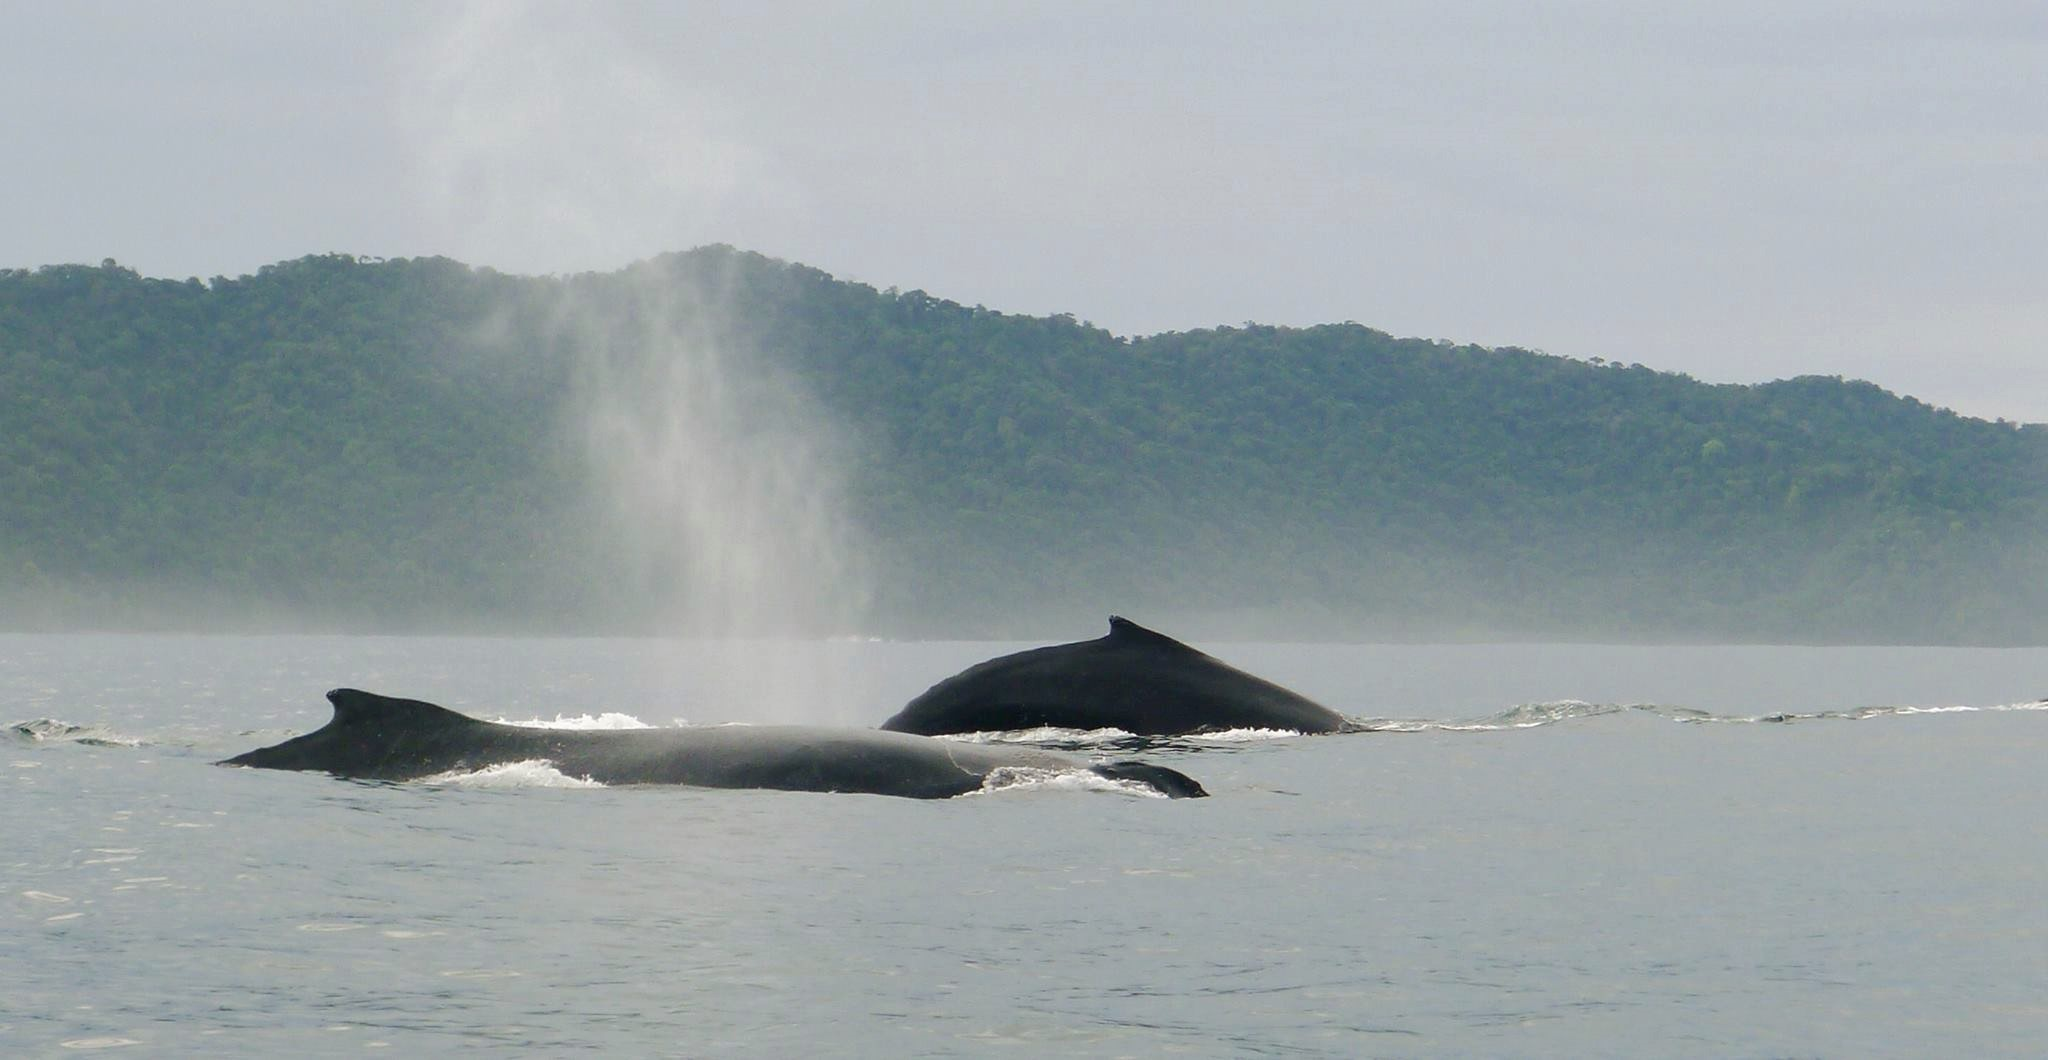 The Yubarta whales (Megaptera novaeangliae) migrate approximately 25 thousand km every year and some of them have their offspring in the warm waters of the Colombian Pacific, one of the most biodiverse areas of the world